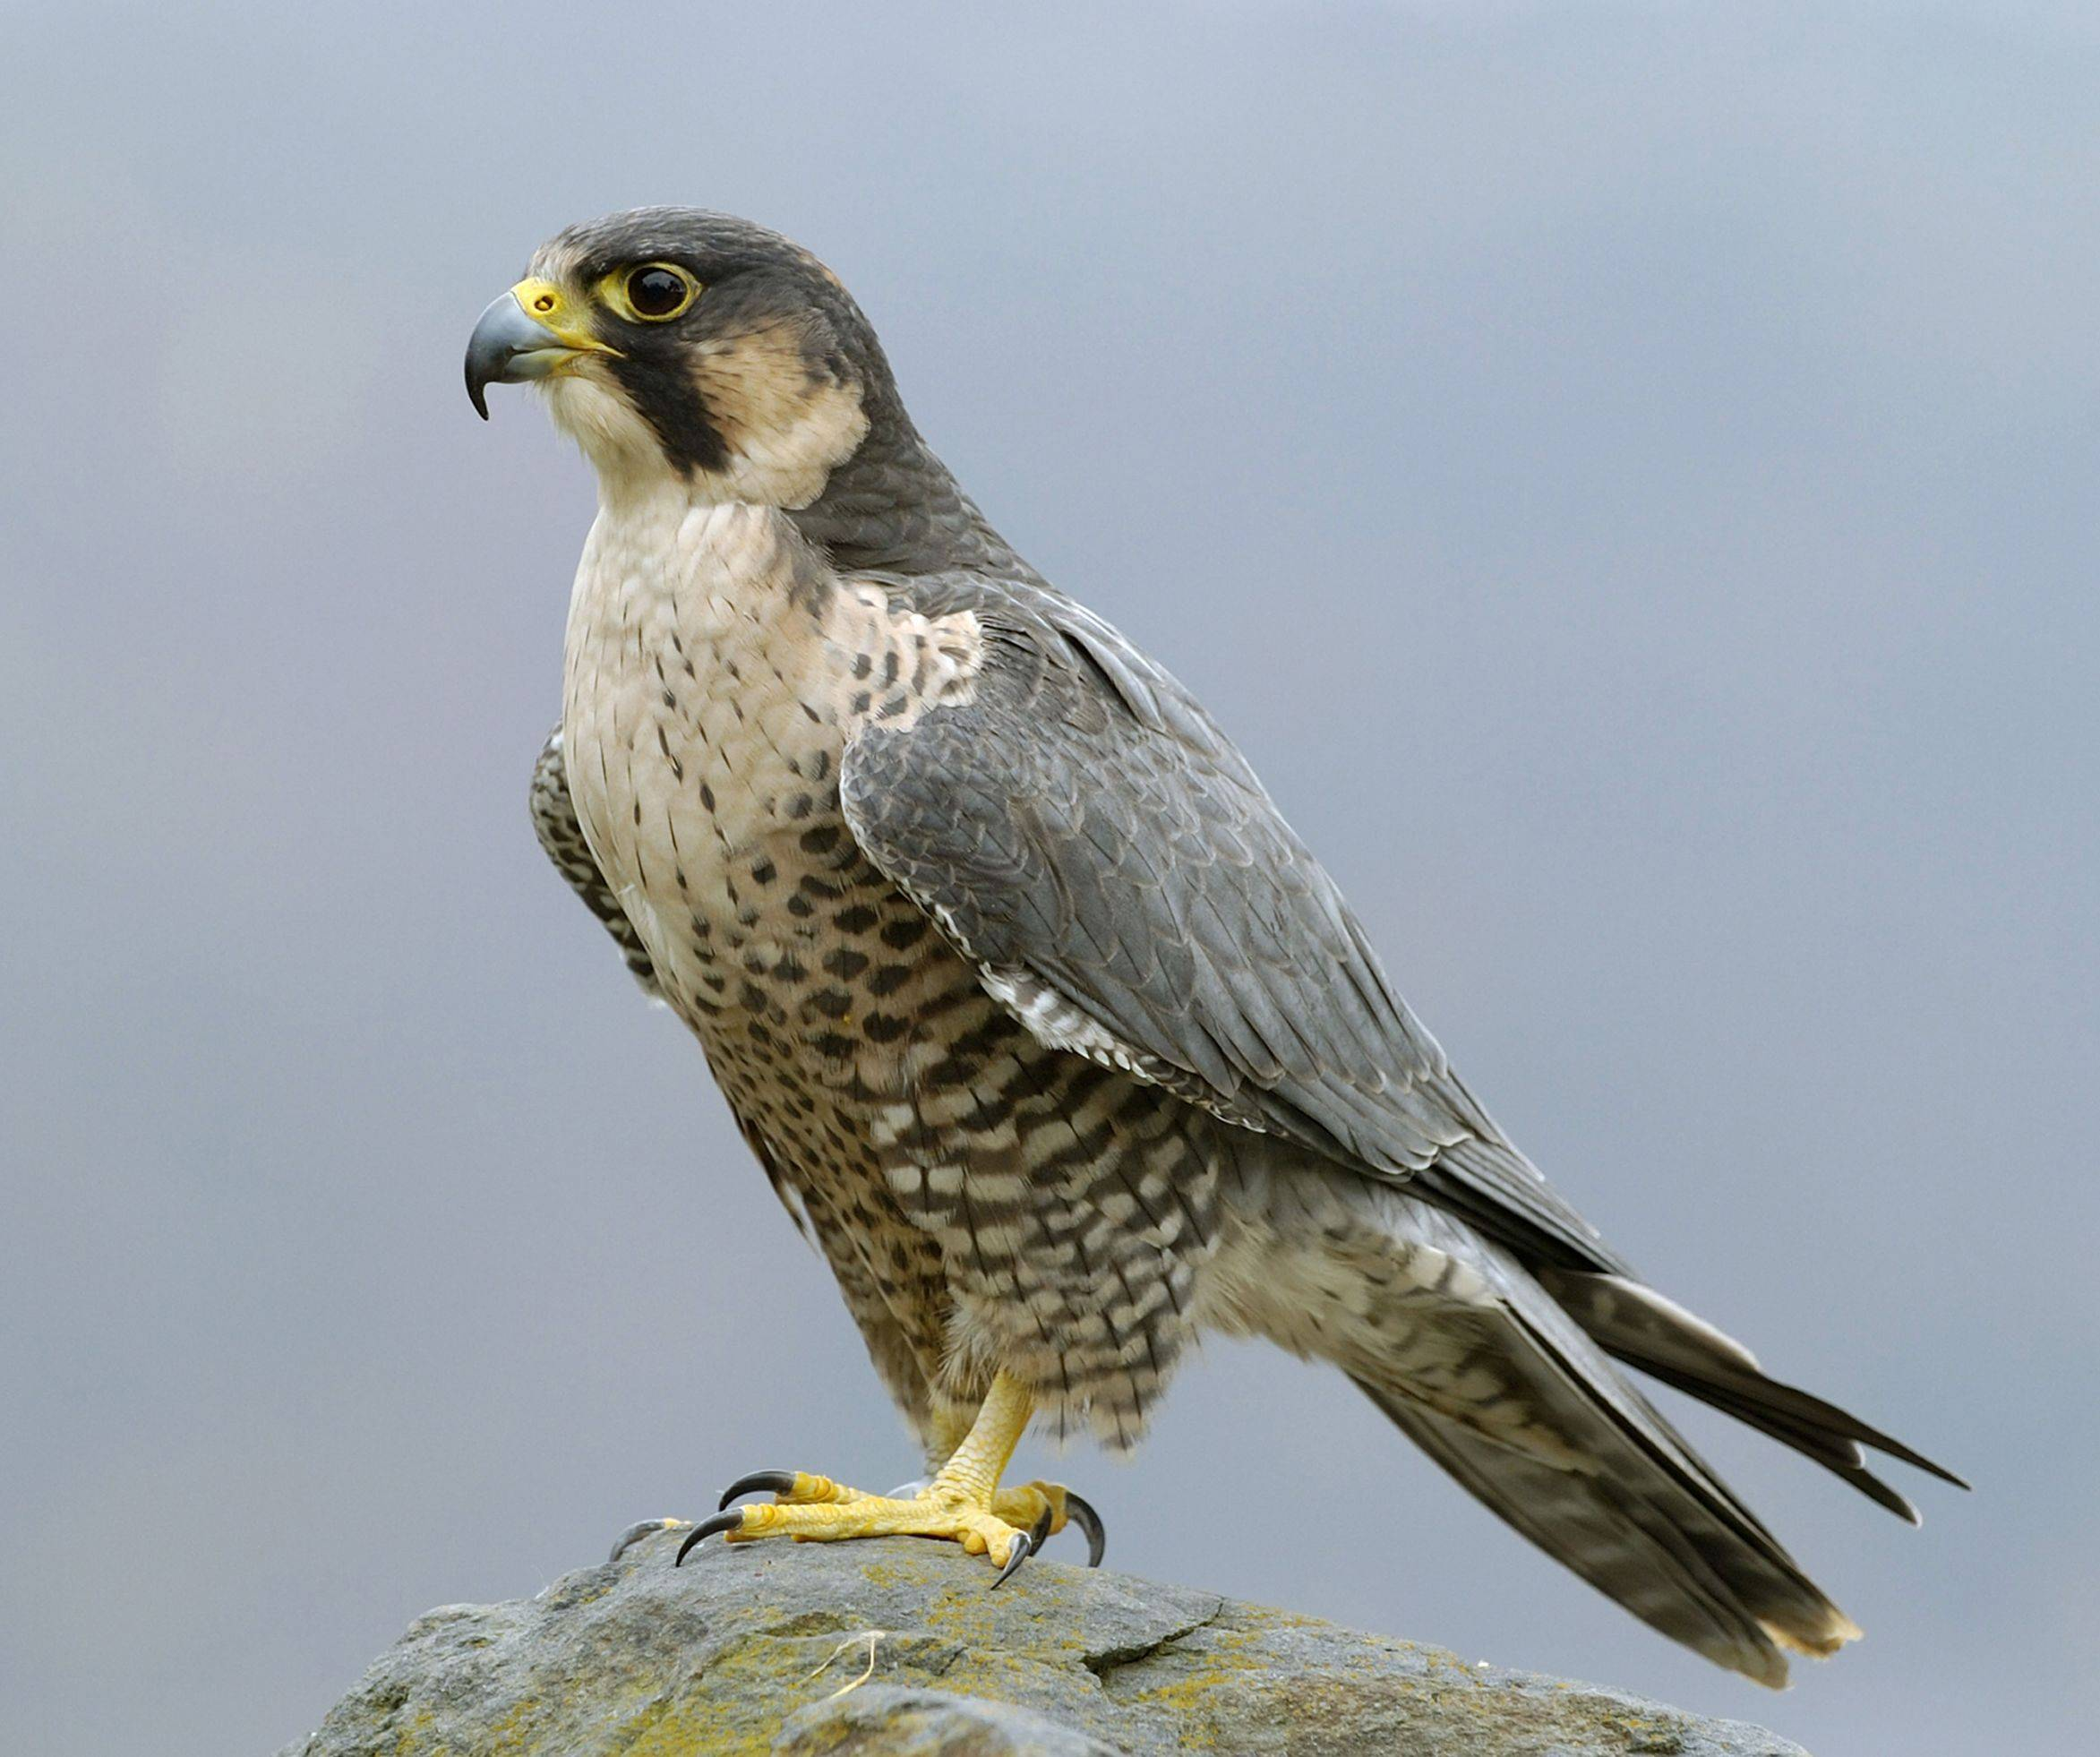 The Peregrine Falcon (Falco peregrinus) is one of the threatened species in Cook County.